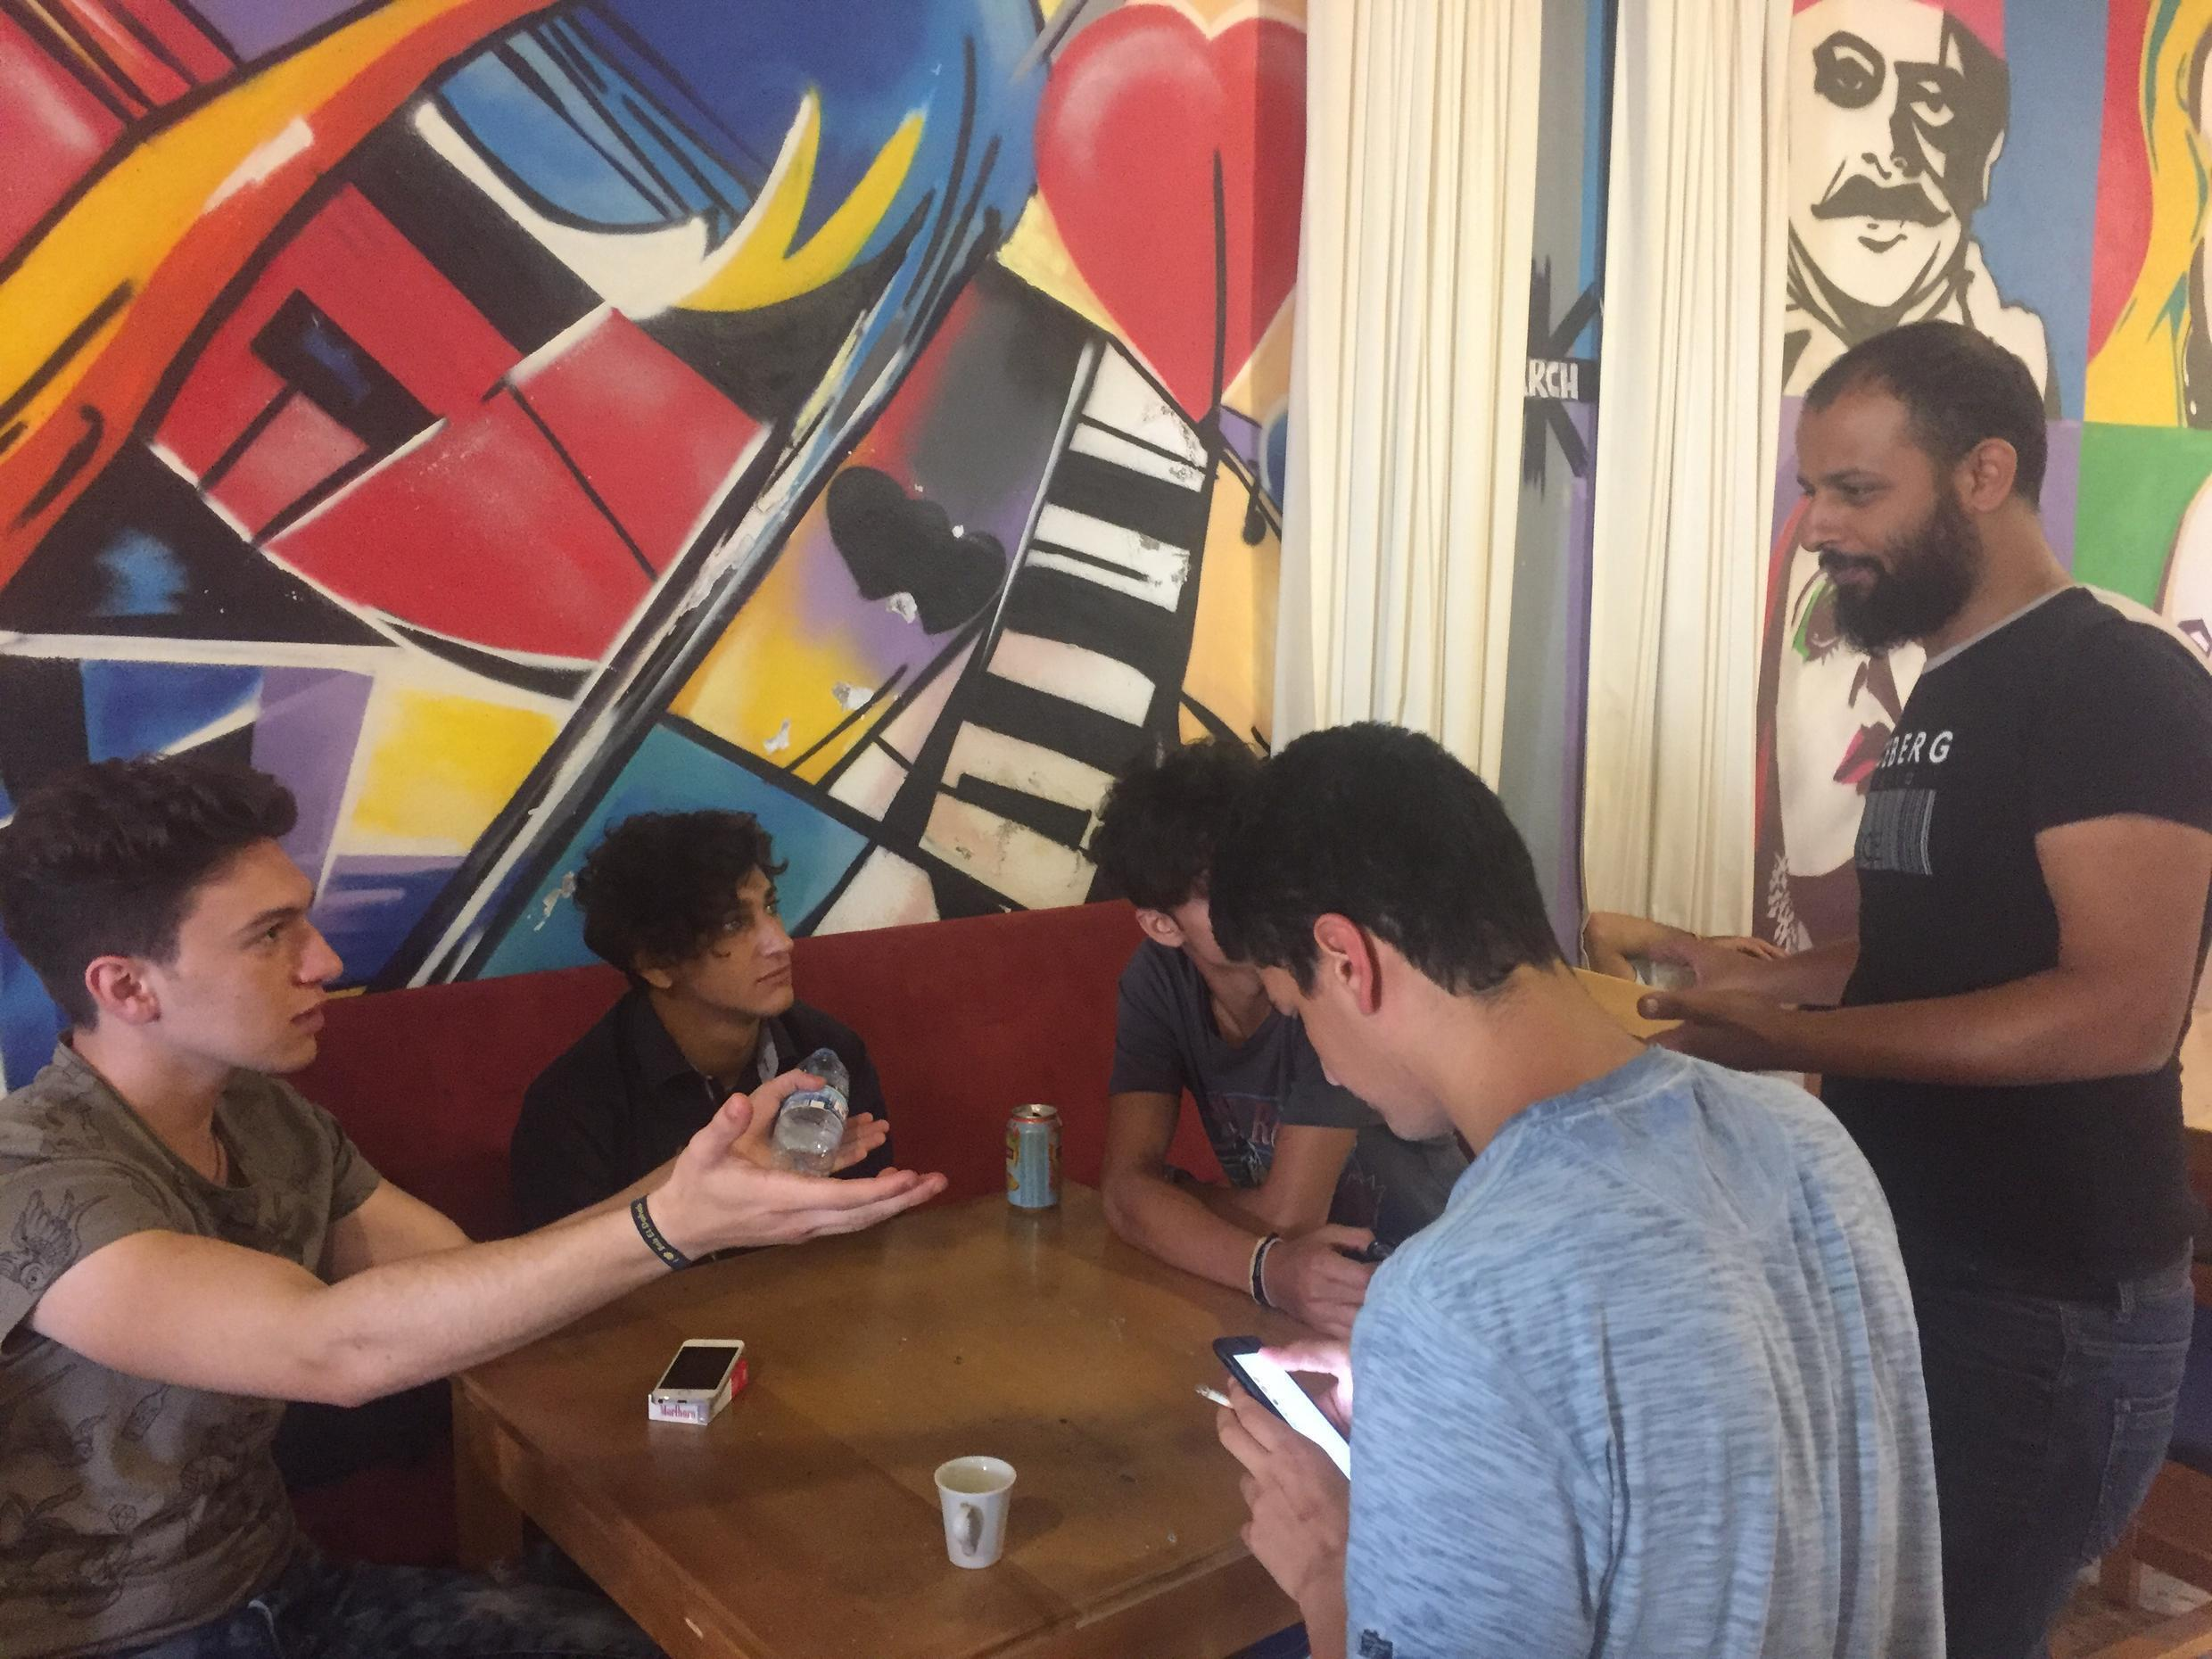 """At Kahwetna, which means """"our café"""", young people from historically divided neighbourhoods in Tripoli, Lebanon meet, talk to each other and come to find out how much they actually have in common with their so-called enemies."""